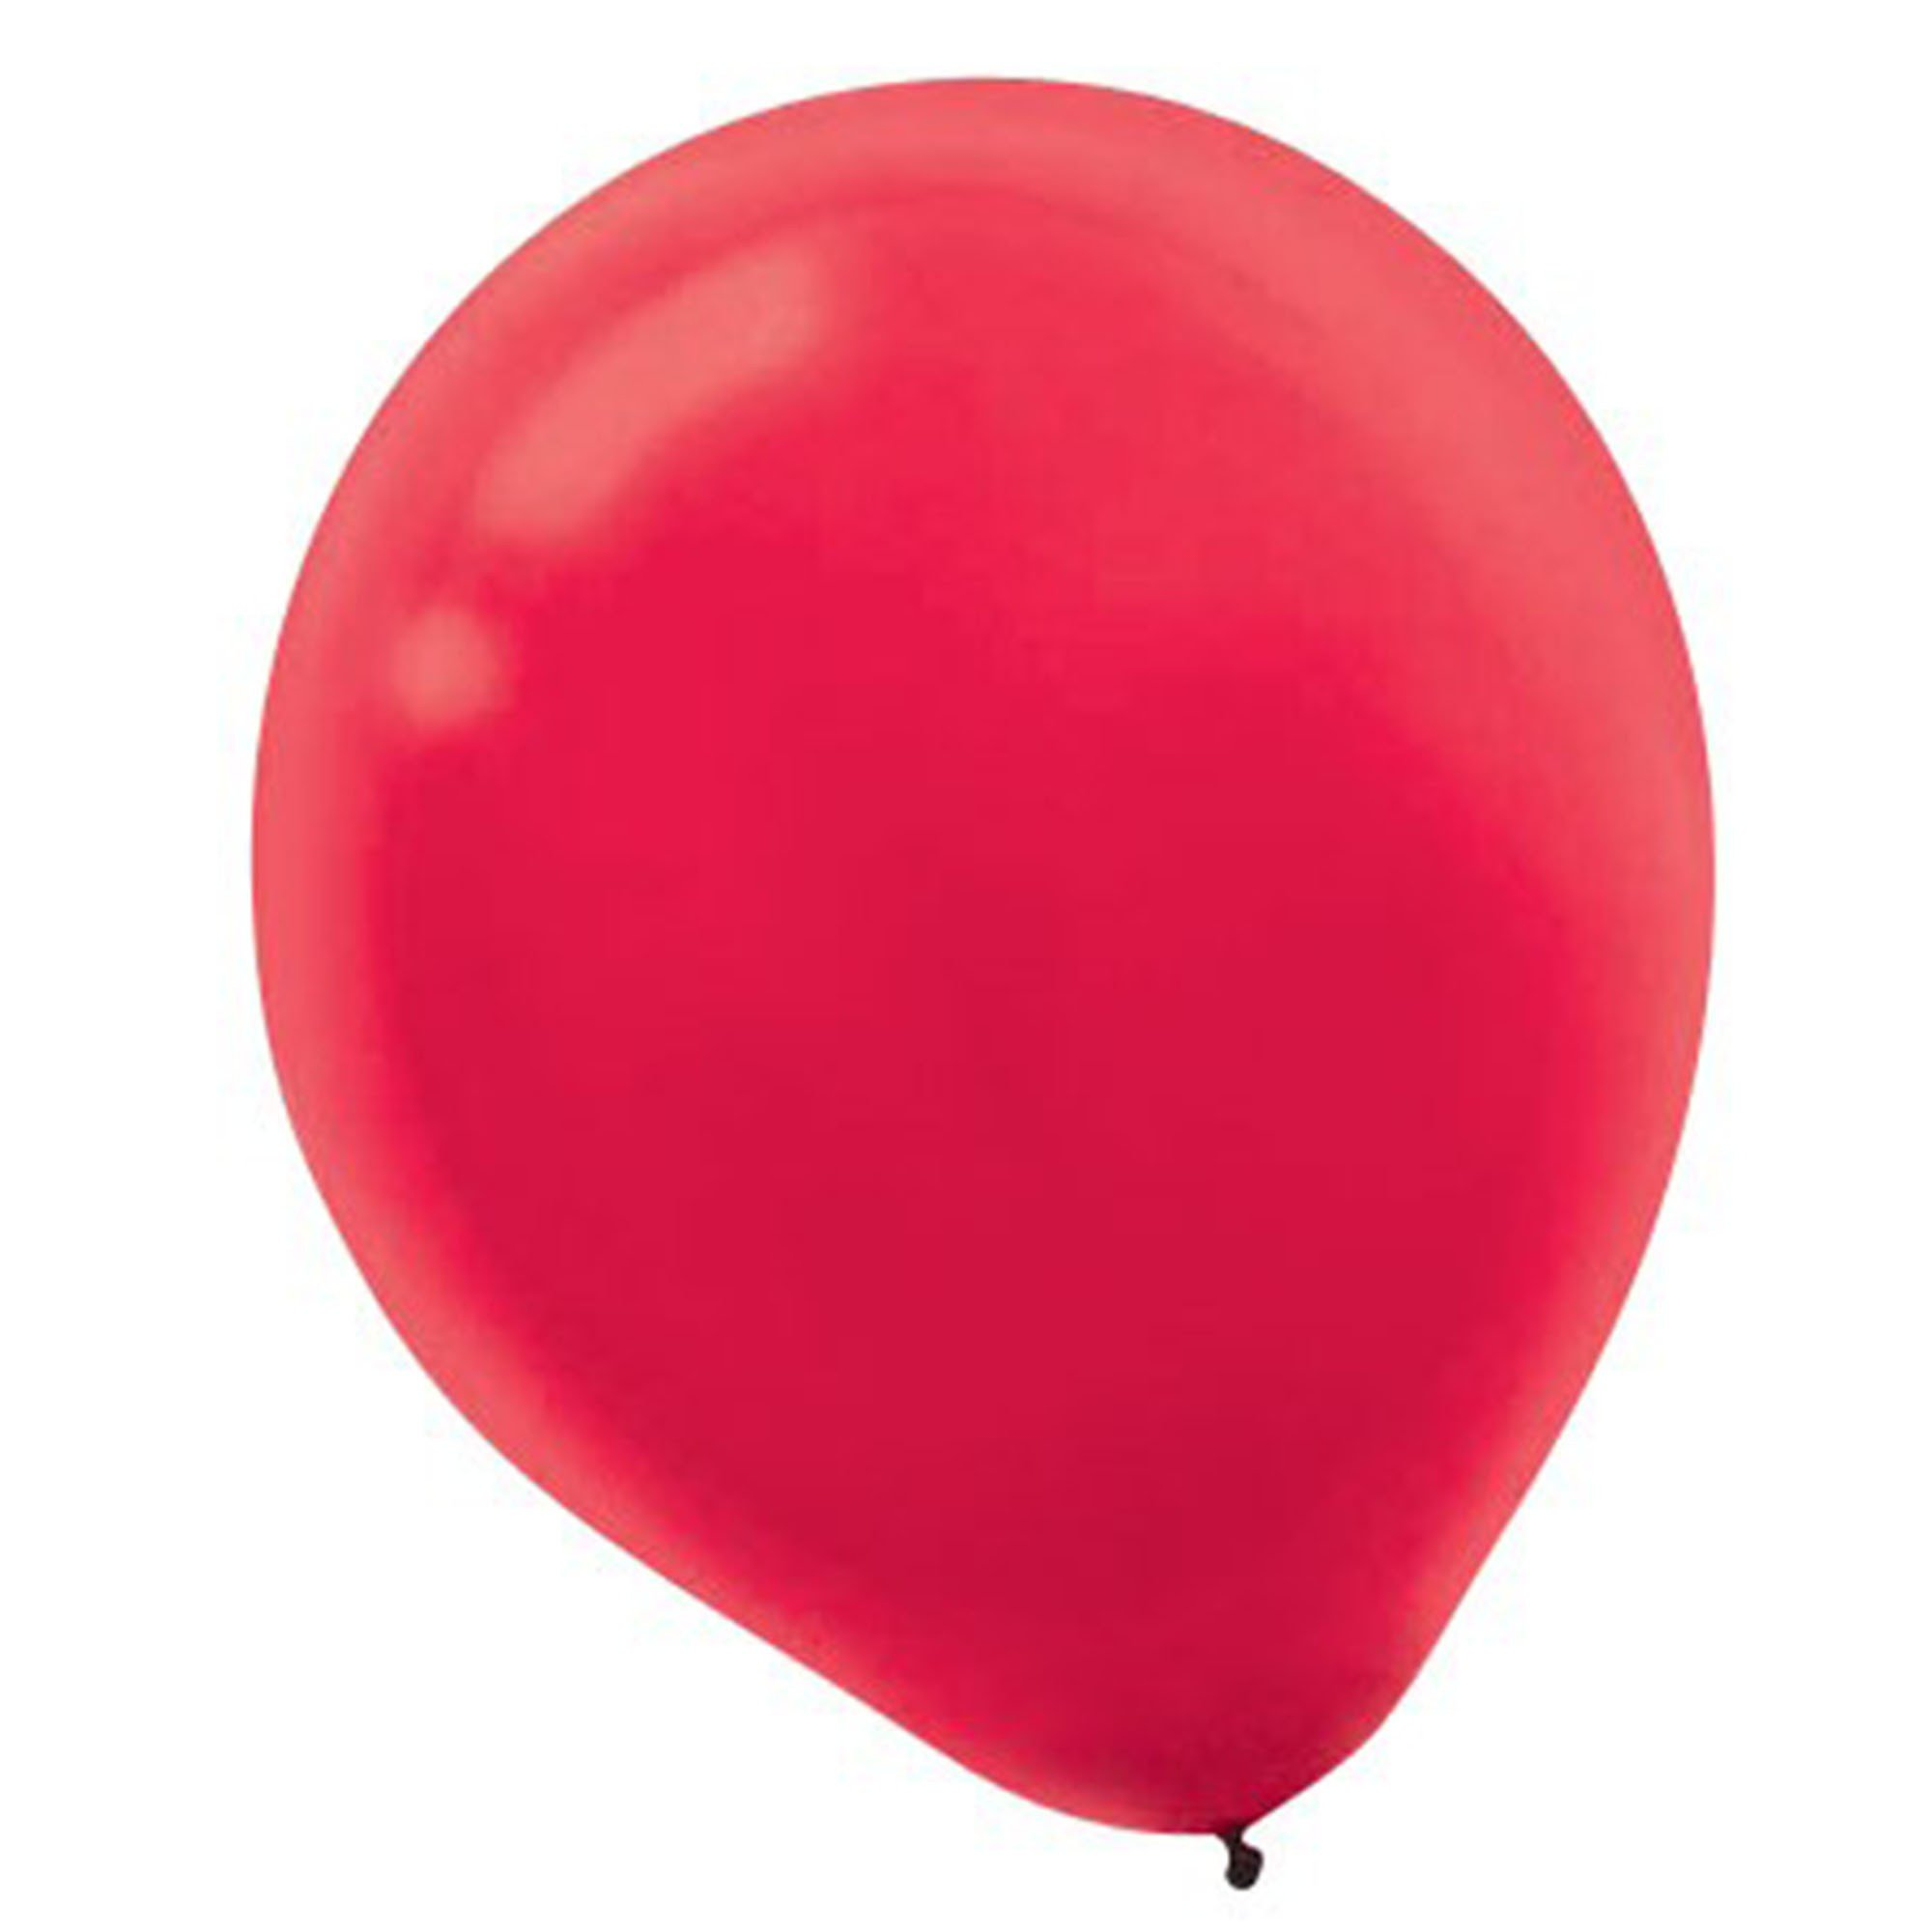 Latex Balloon 30cm 72 CT Red/White/Blue